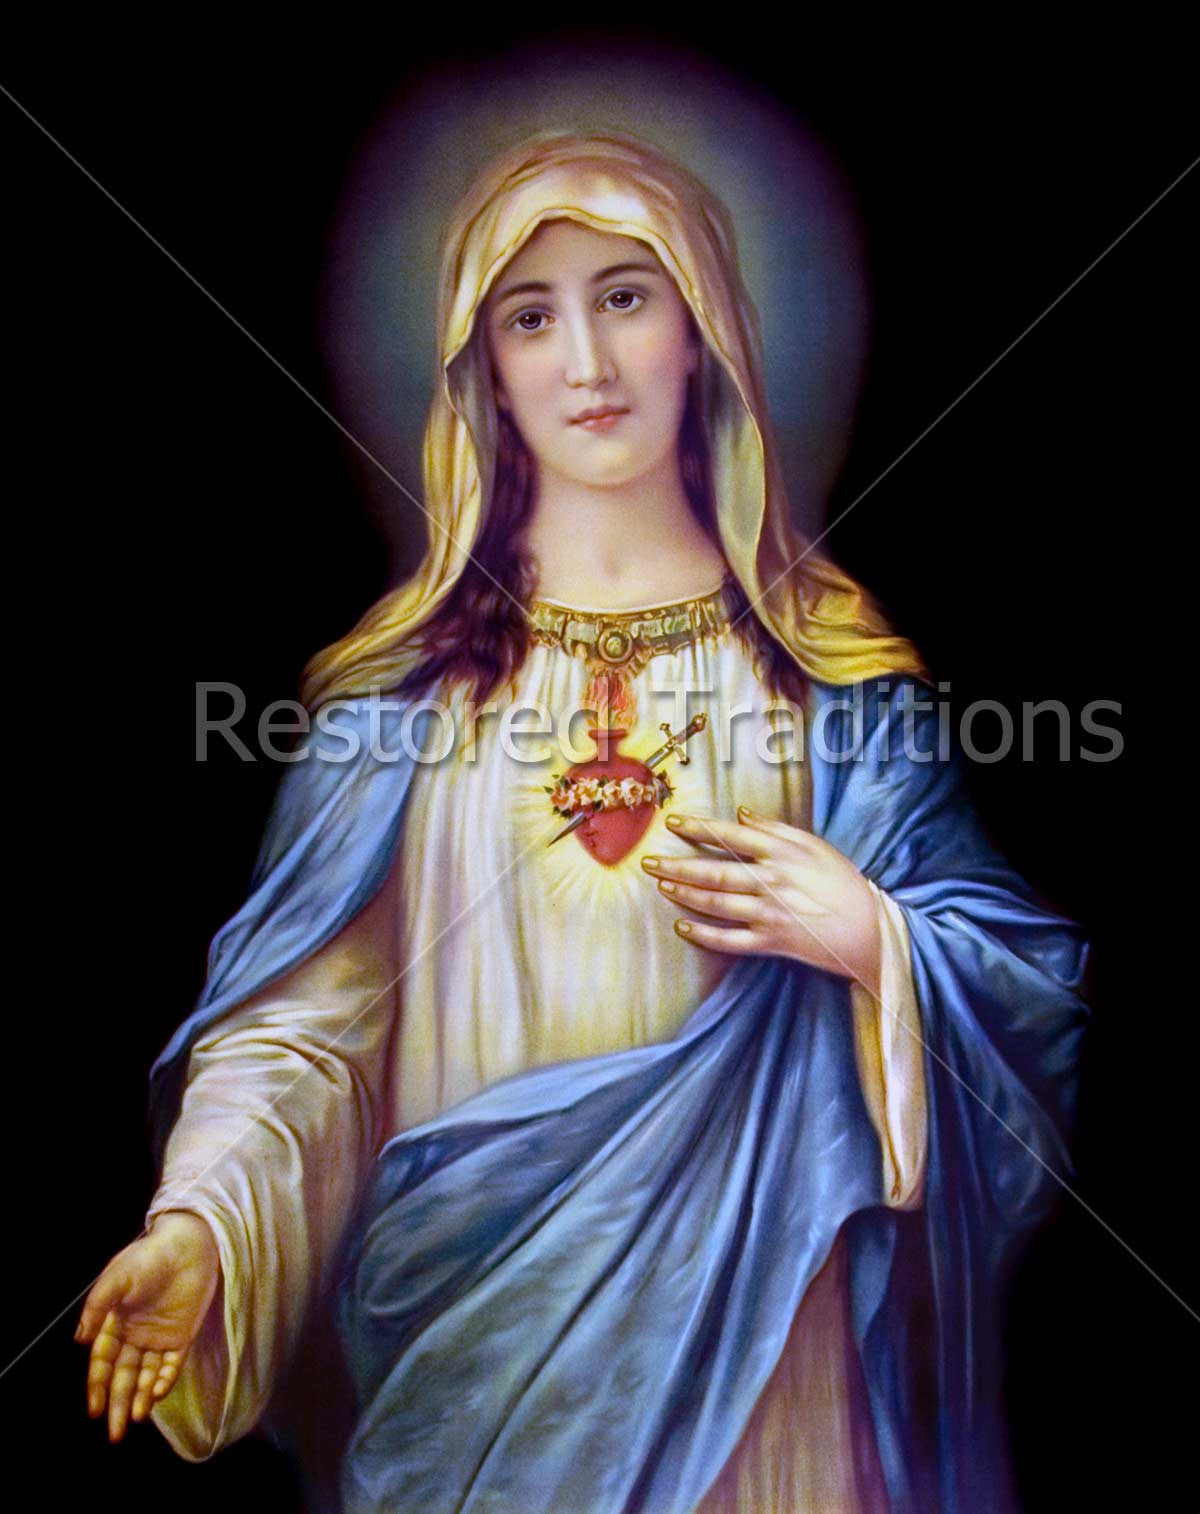 High Resolution Images Of The Virgin Mary For Download Restored